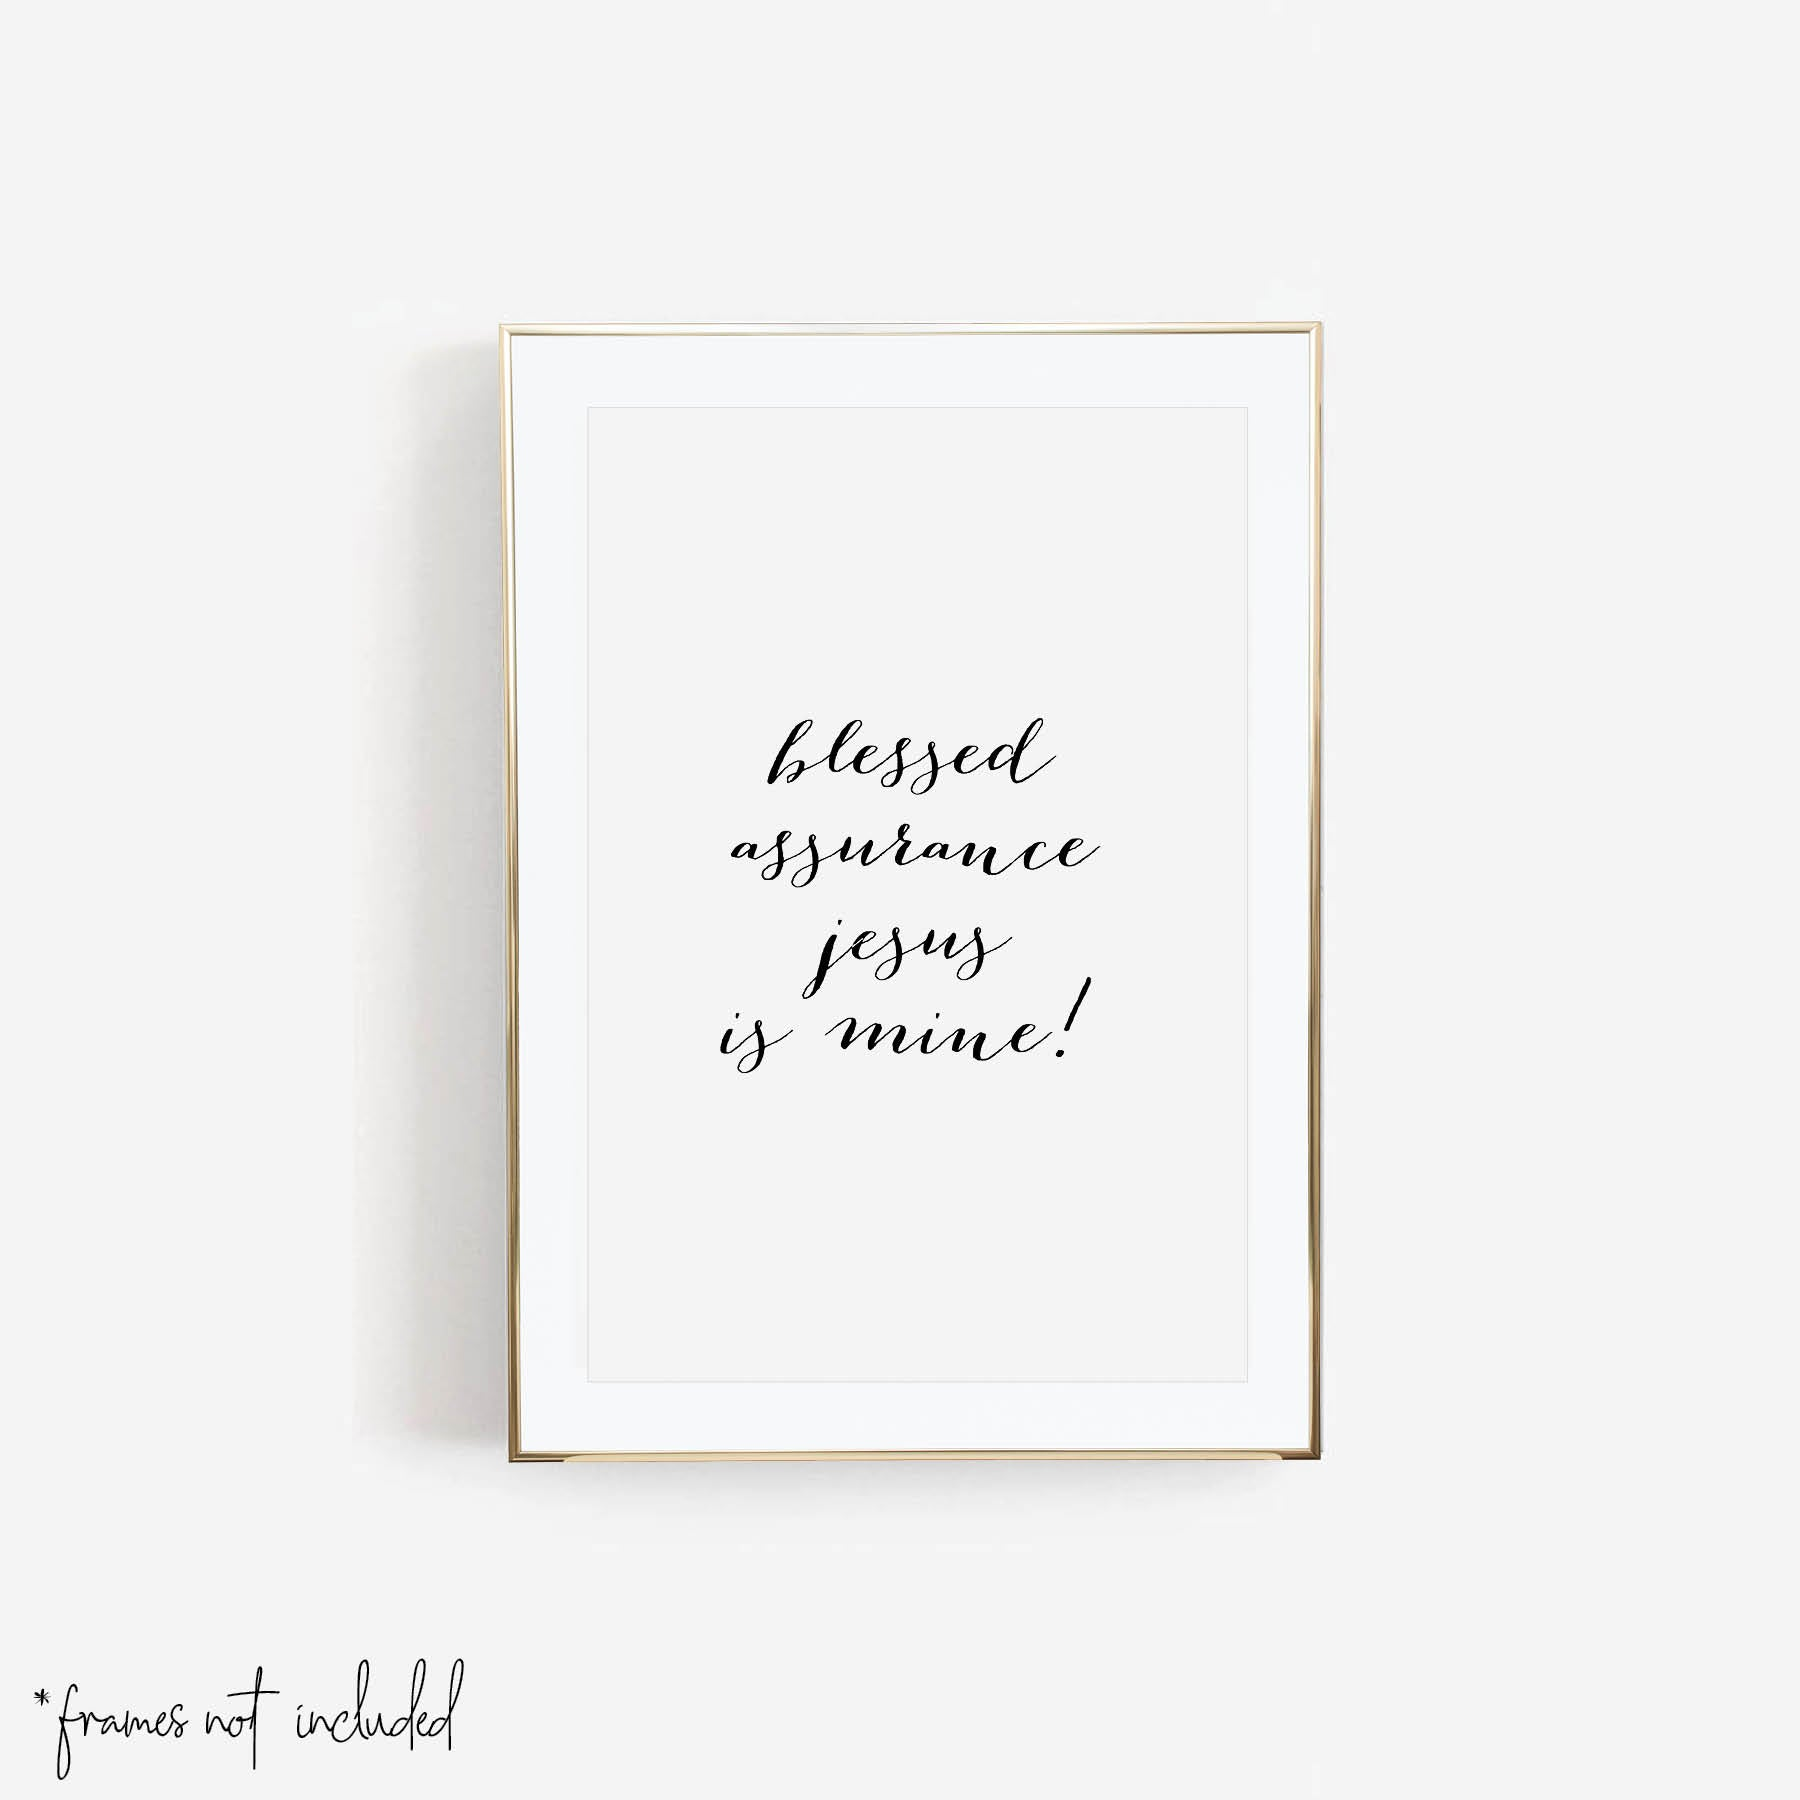 Blessed Assurance Jesus Is Mine! Print